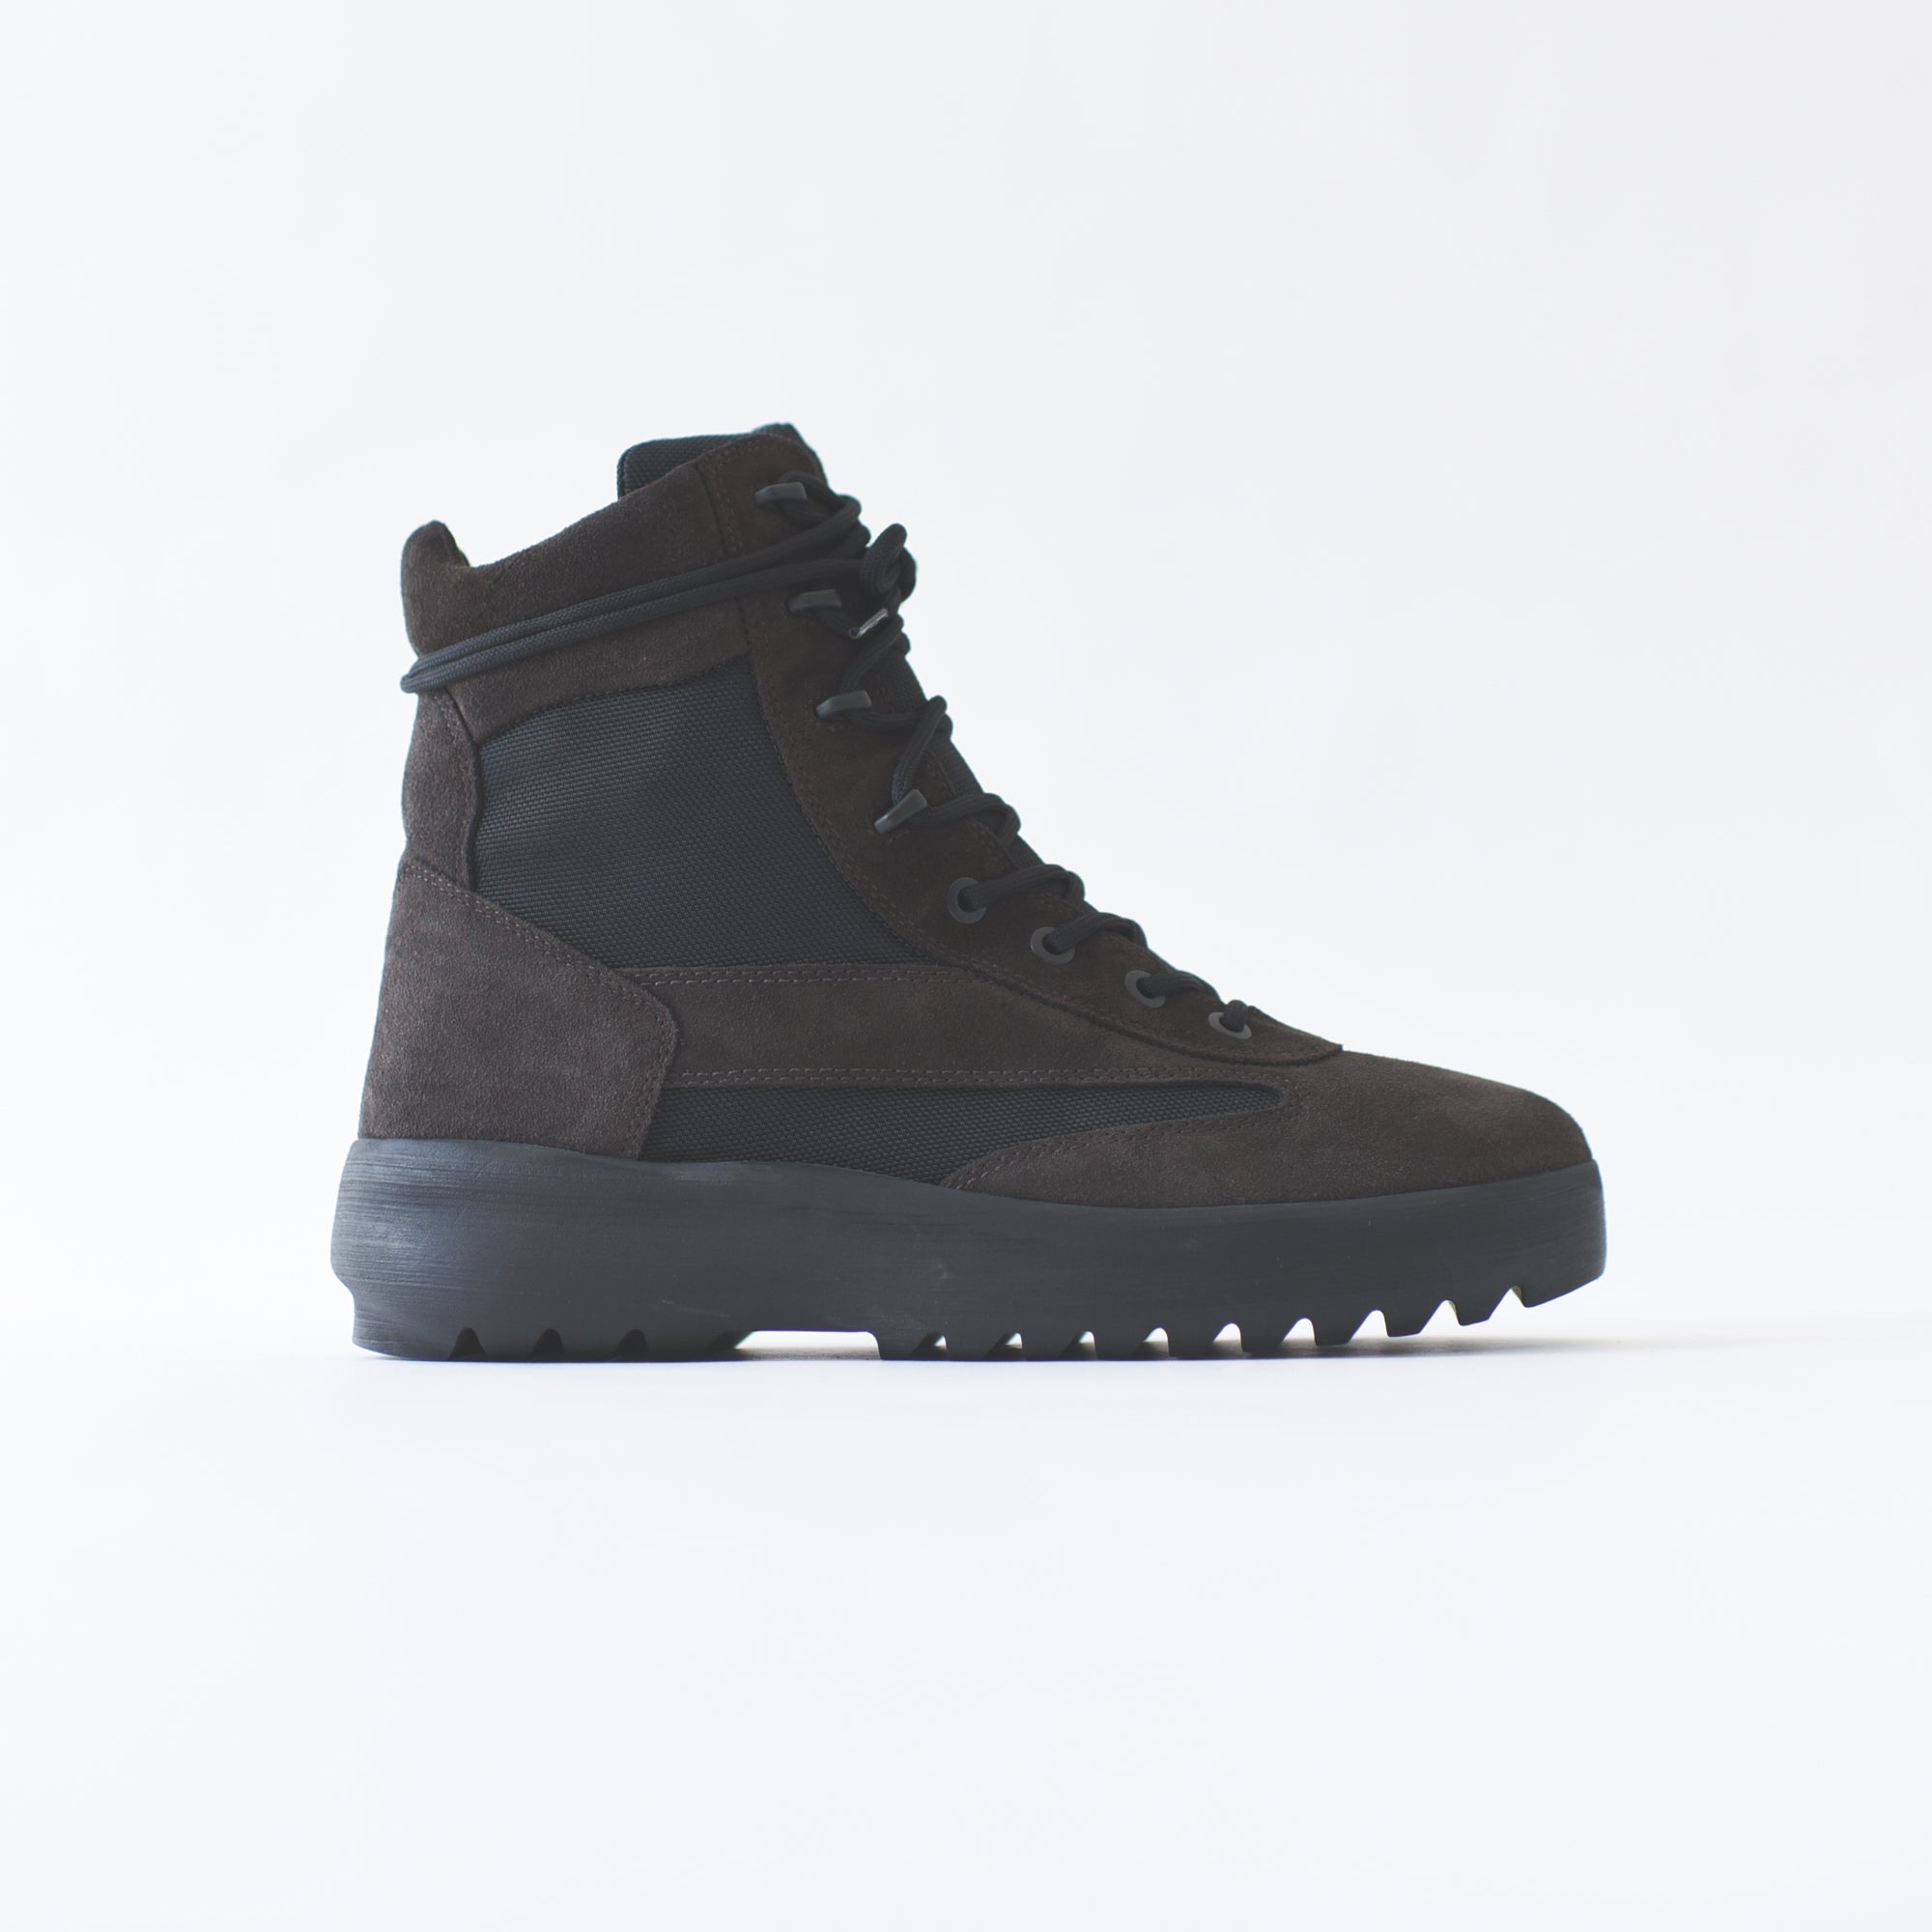 Yeezy Mens Suede Military Boot - Oil